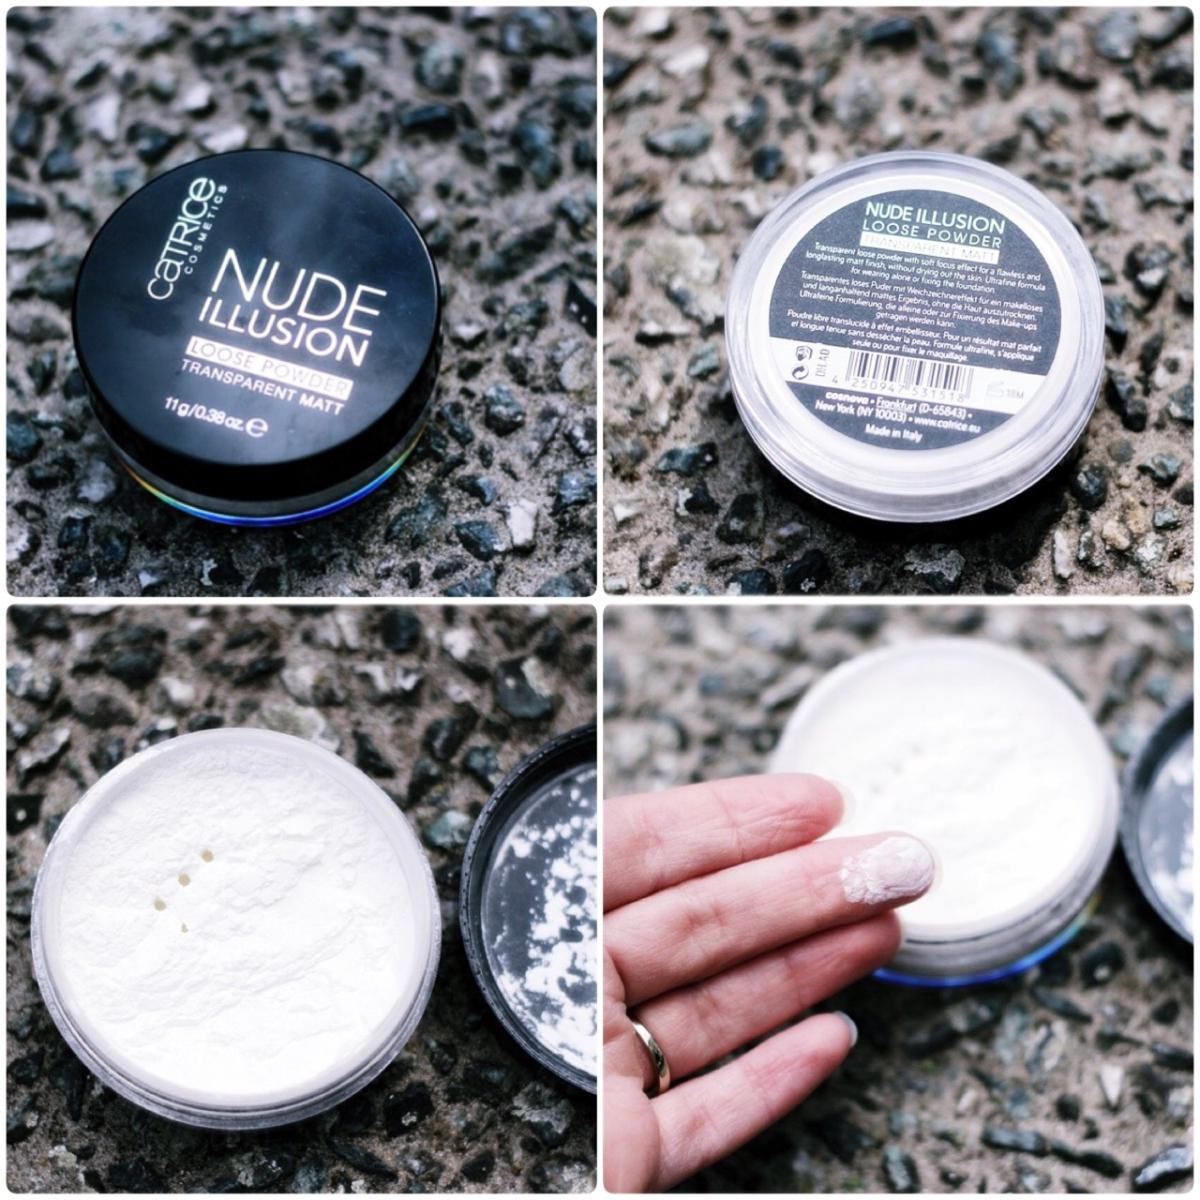 phan-phu-dang-bot-catrice-nude-illusion-loose-powder